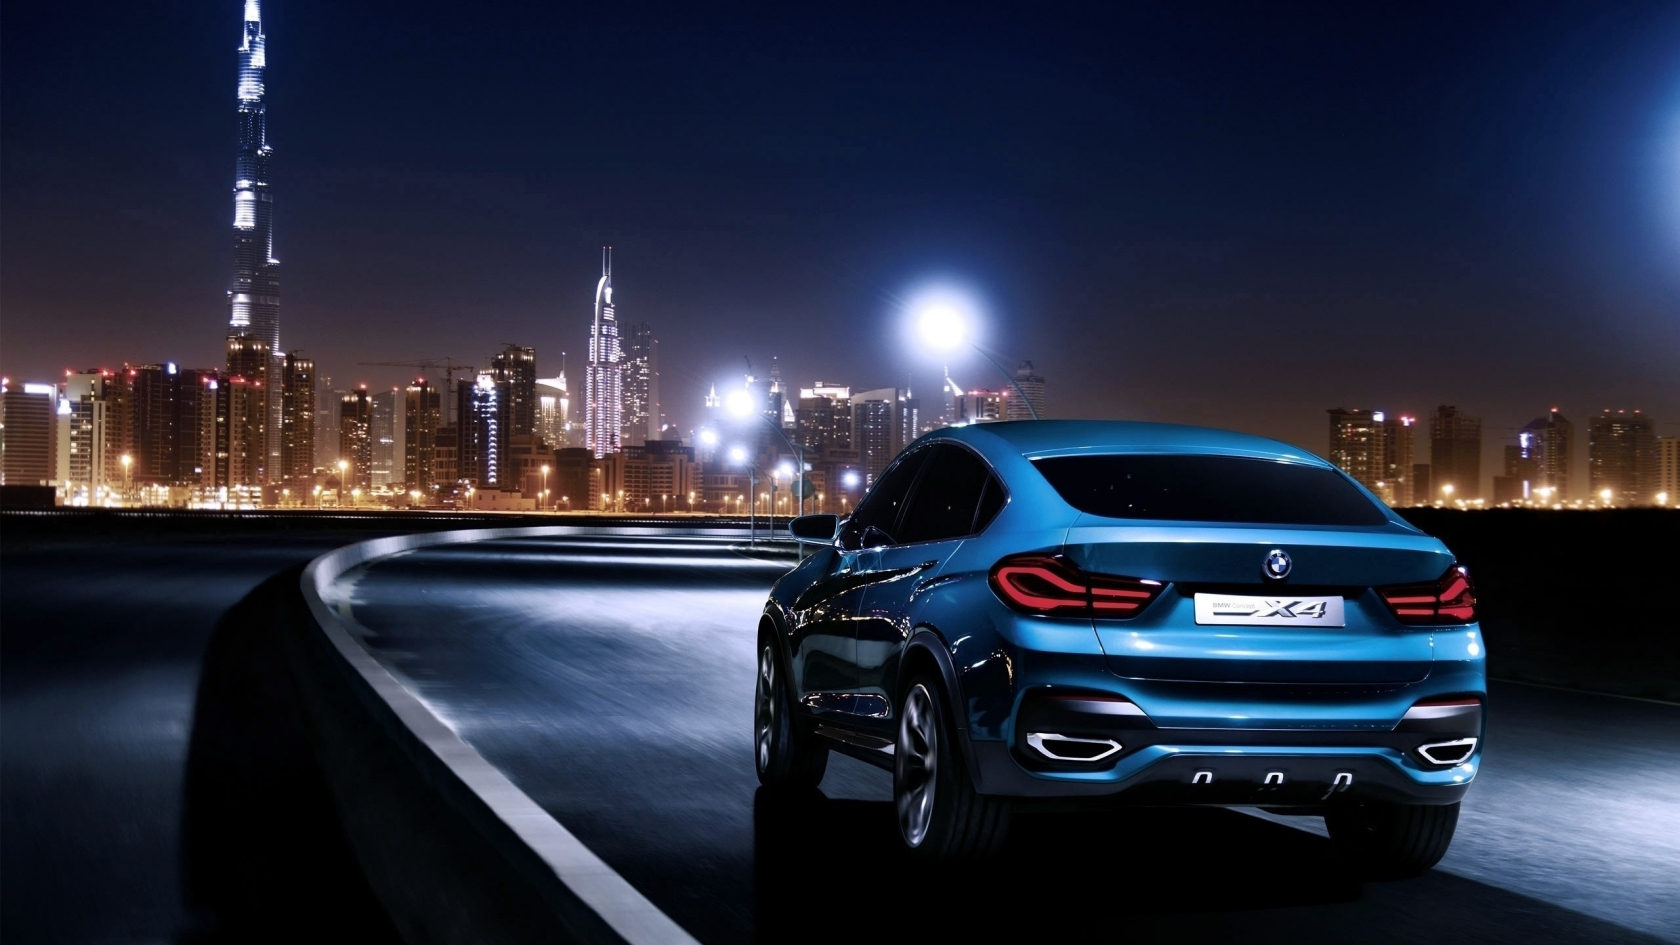 Blue BMW X4 Rear for 1680 x 945 HDTV resolution